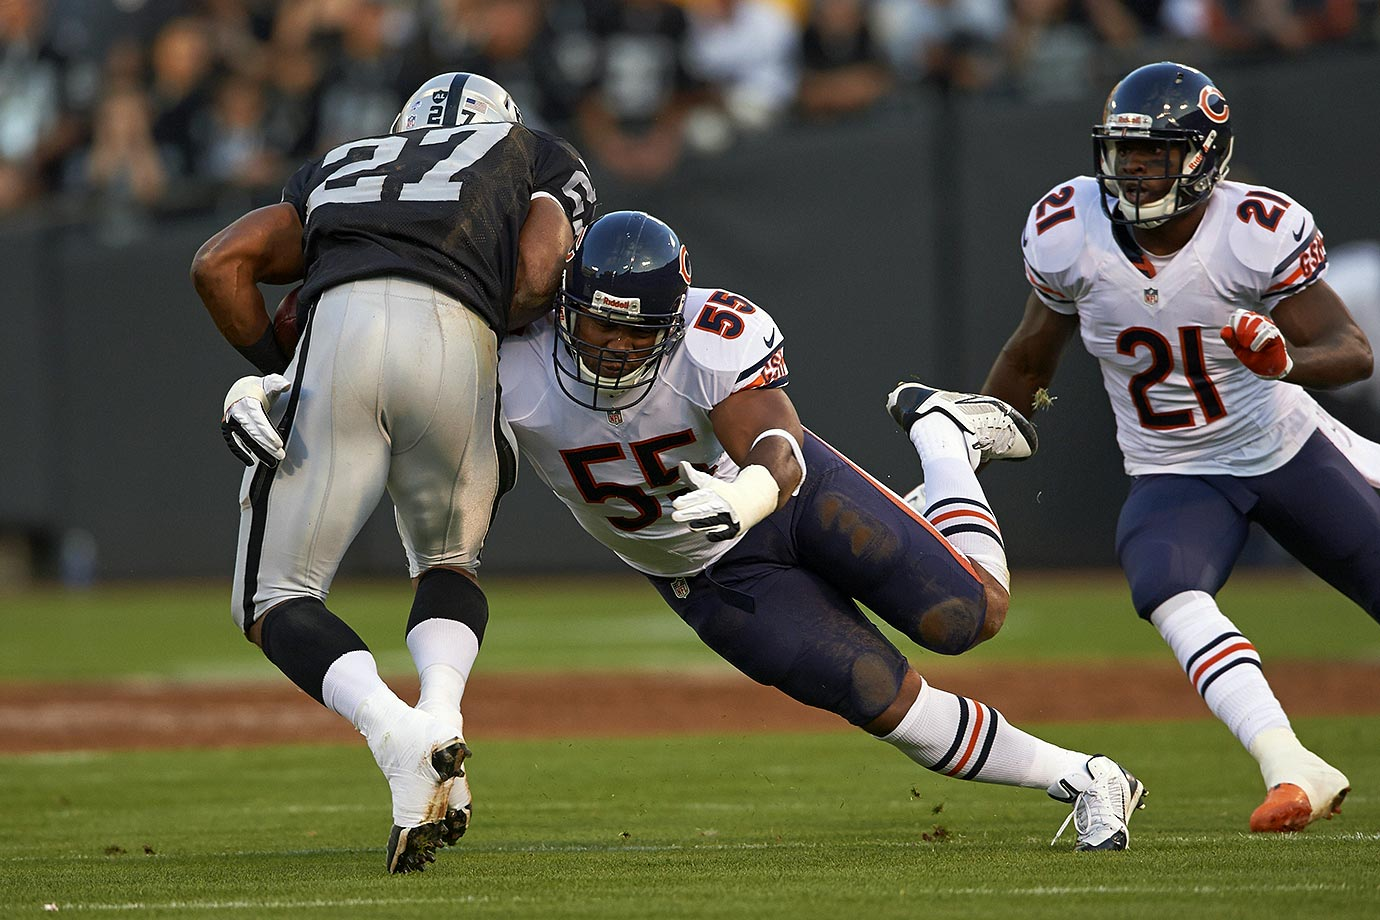 A seven-time Pro Bowl linebacker who helped the Chicago Bears reach Super Bowl XLI in 2007, Lance Briggs revealed in September that he plans to retire. Draftred in the third round in 2003, Briggs had 15 sacks and 16 interceptions in his career, and scored five touchdowns.